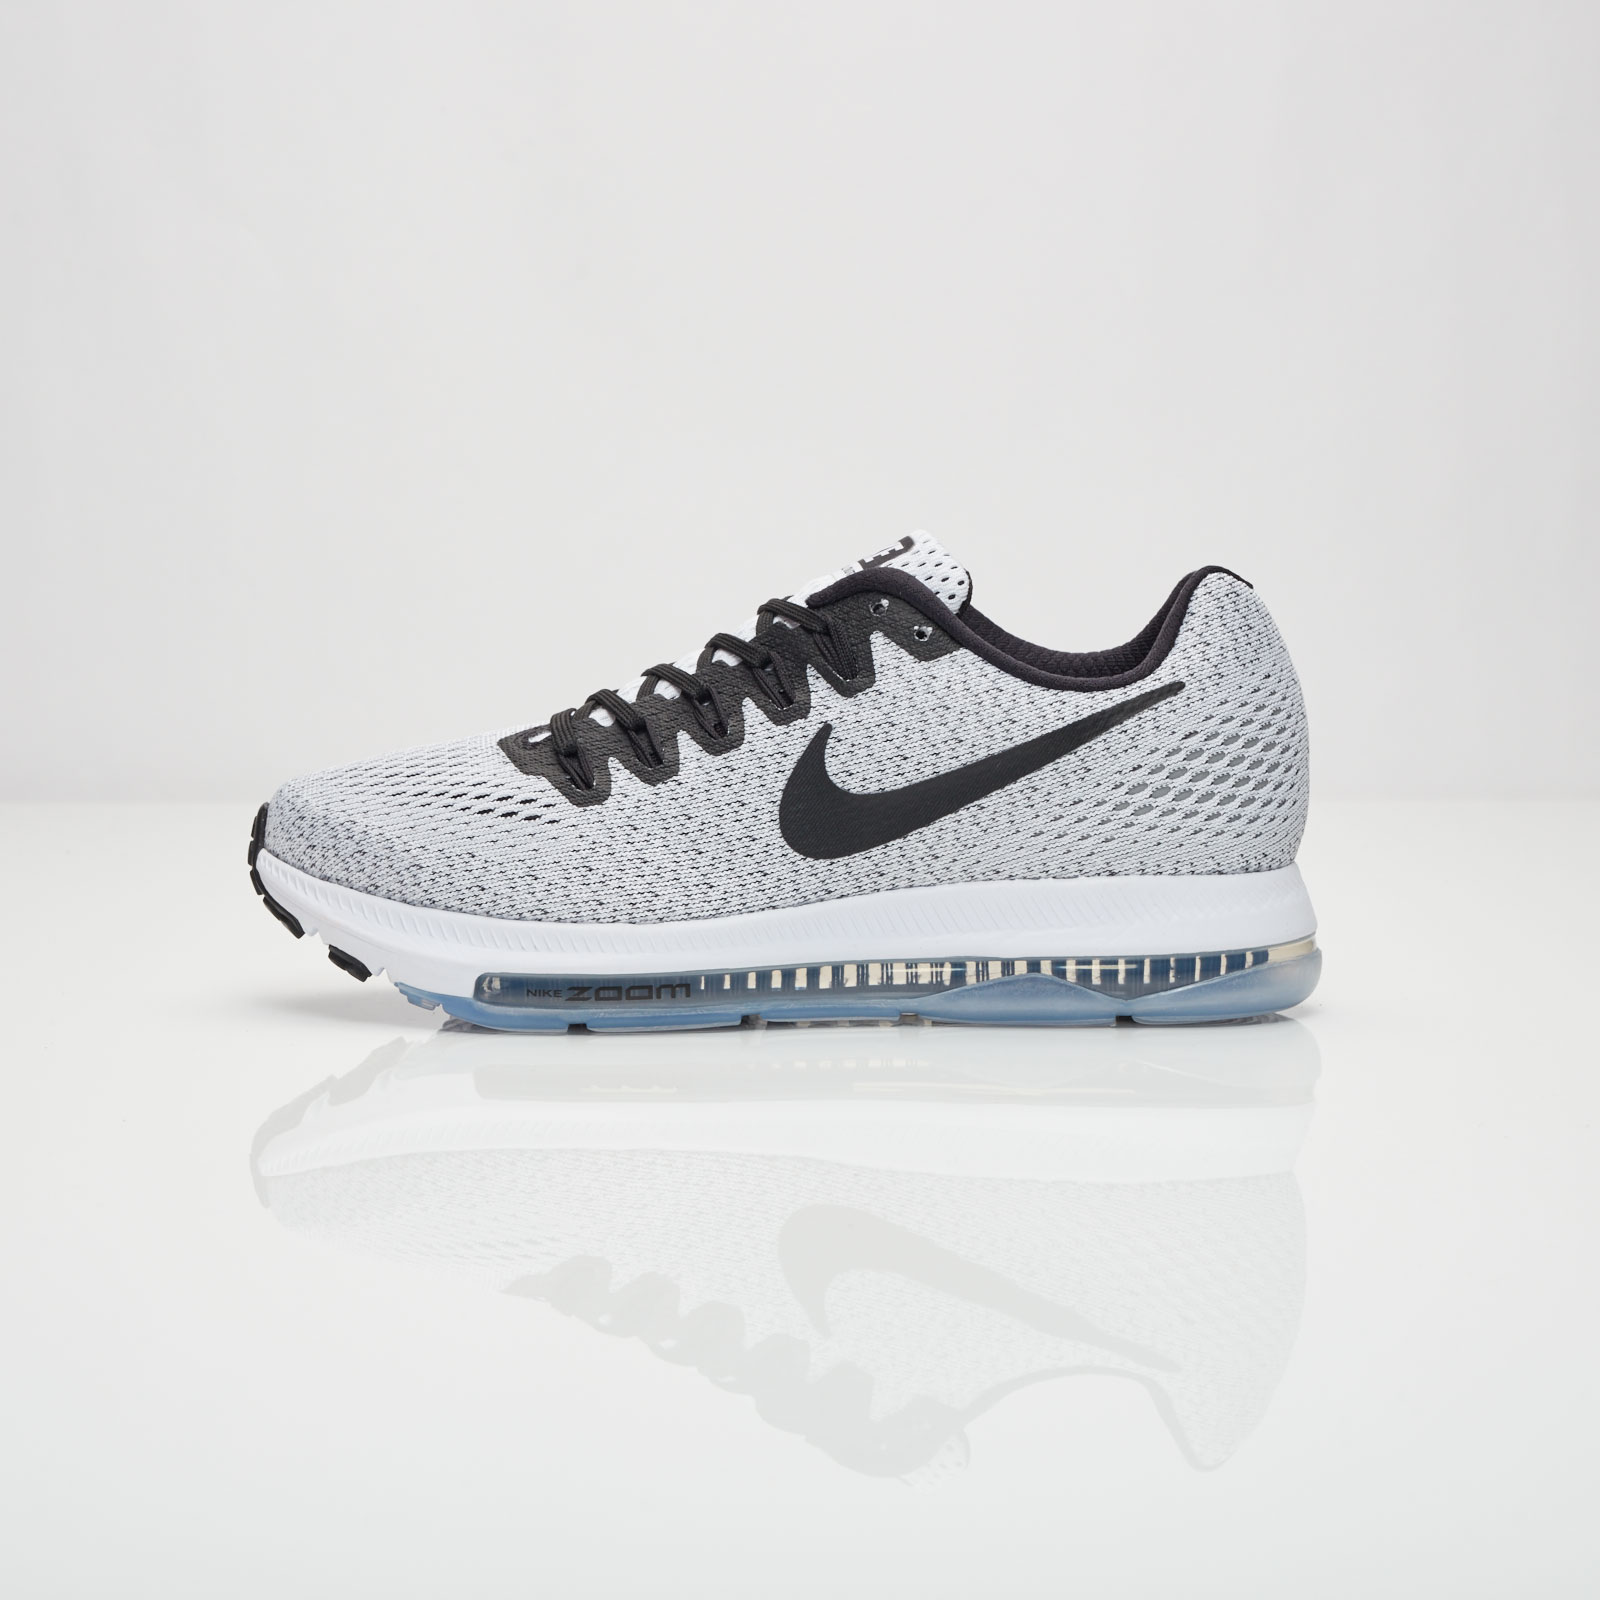 san francisco 35a8e ab8ad Nike Wmns Zoom All Out Low - 889122-100 - Sneakersnstuff | sneakers &  streetwear online since 1999